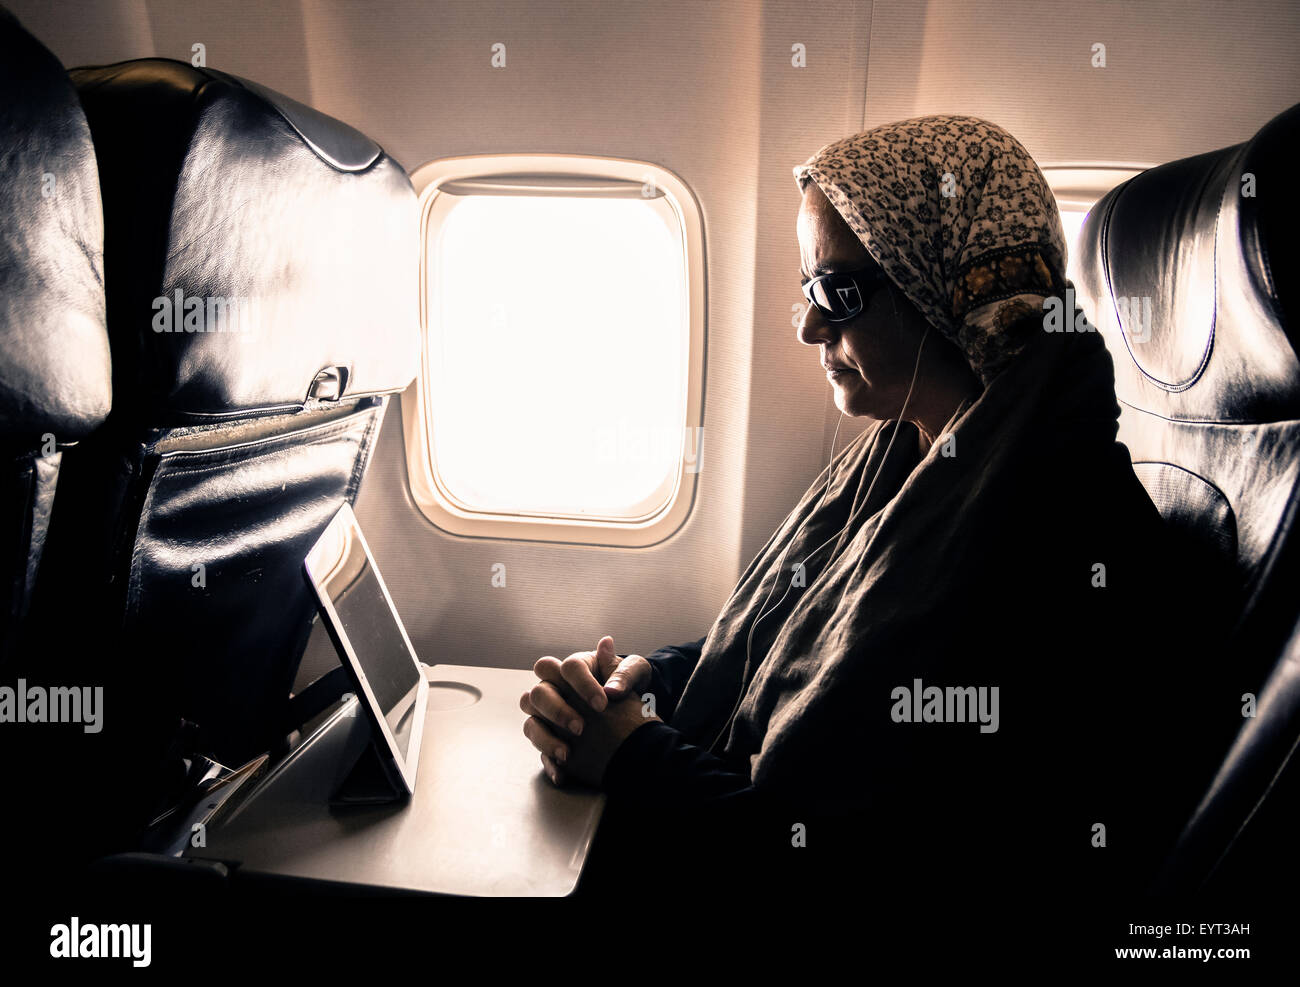 Woman reading book on tablet device in airplane window seat - Stock Image